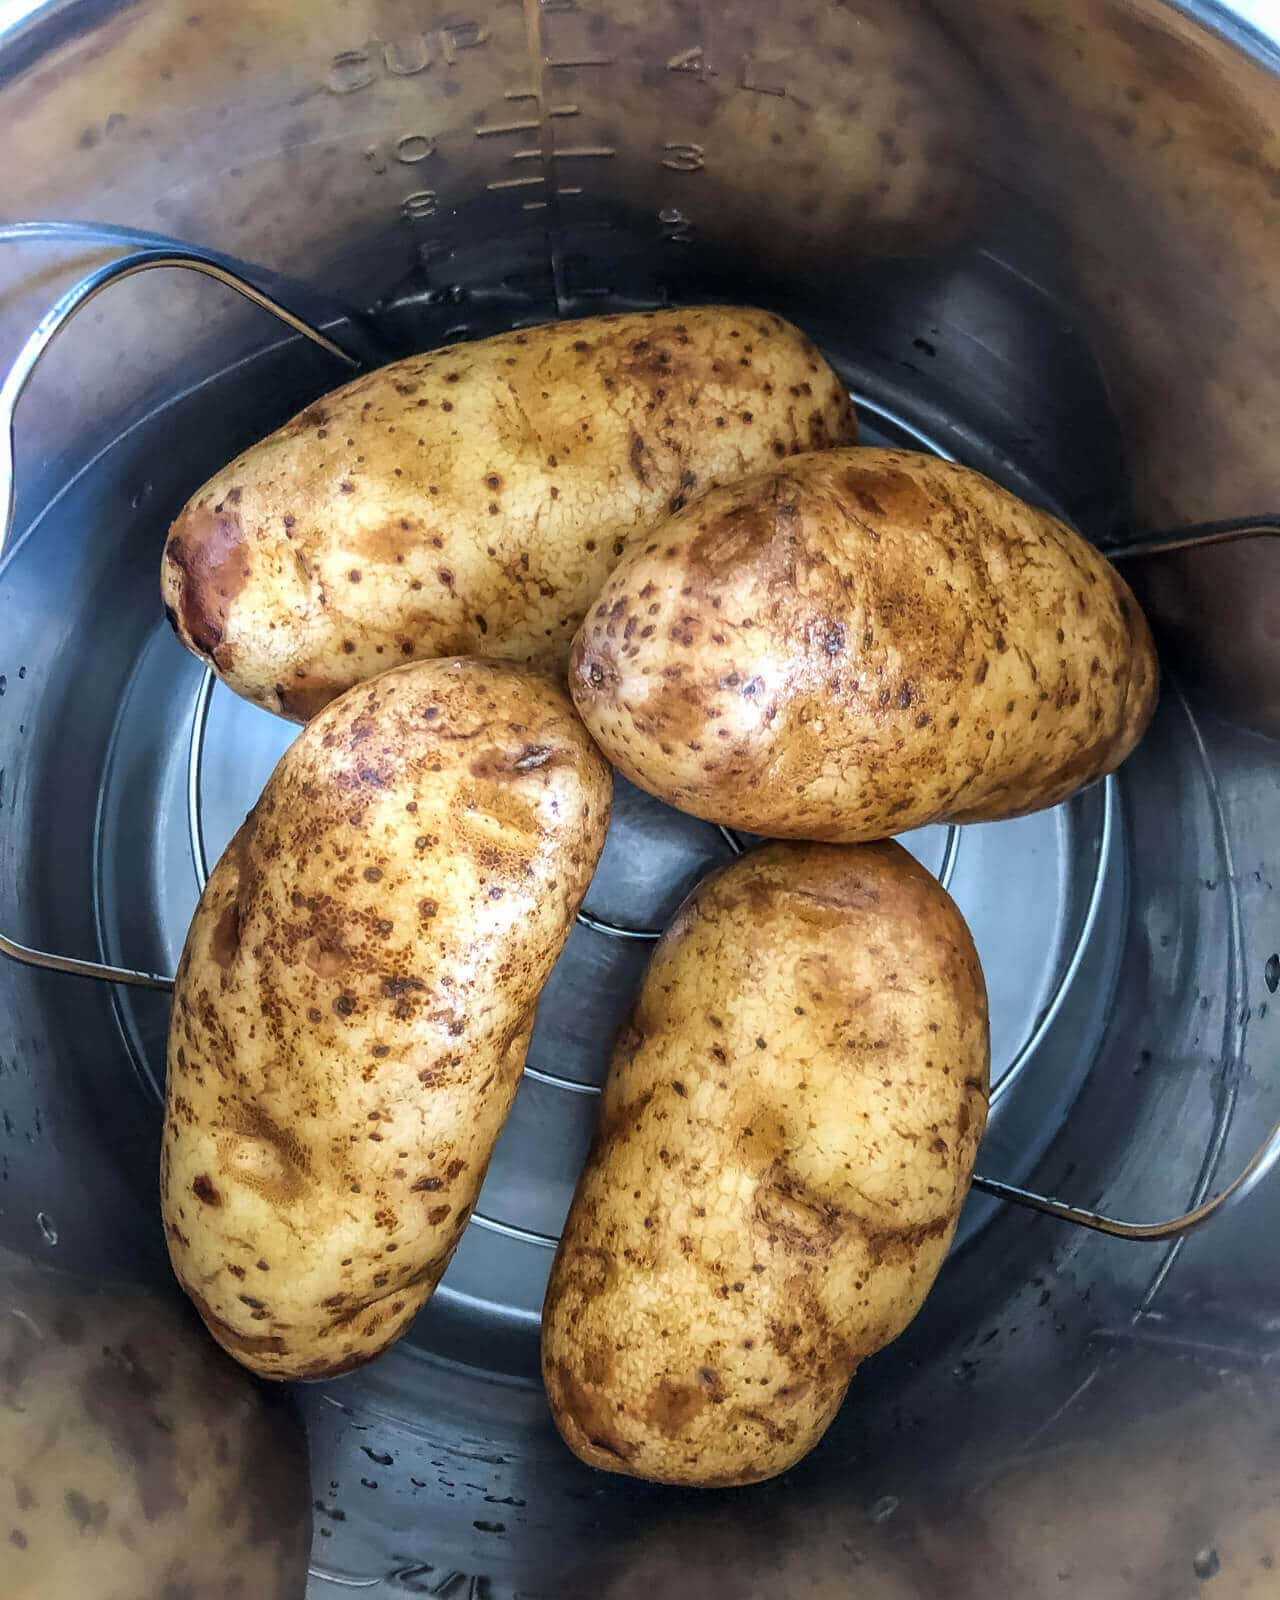 Four potatoes in the instant pot before cooking.